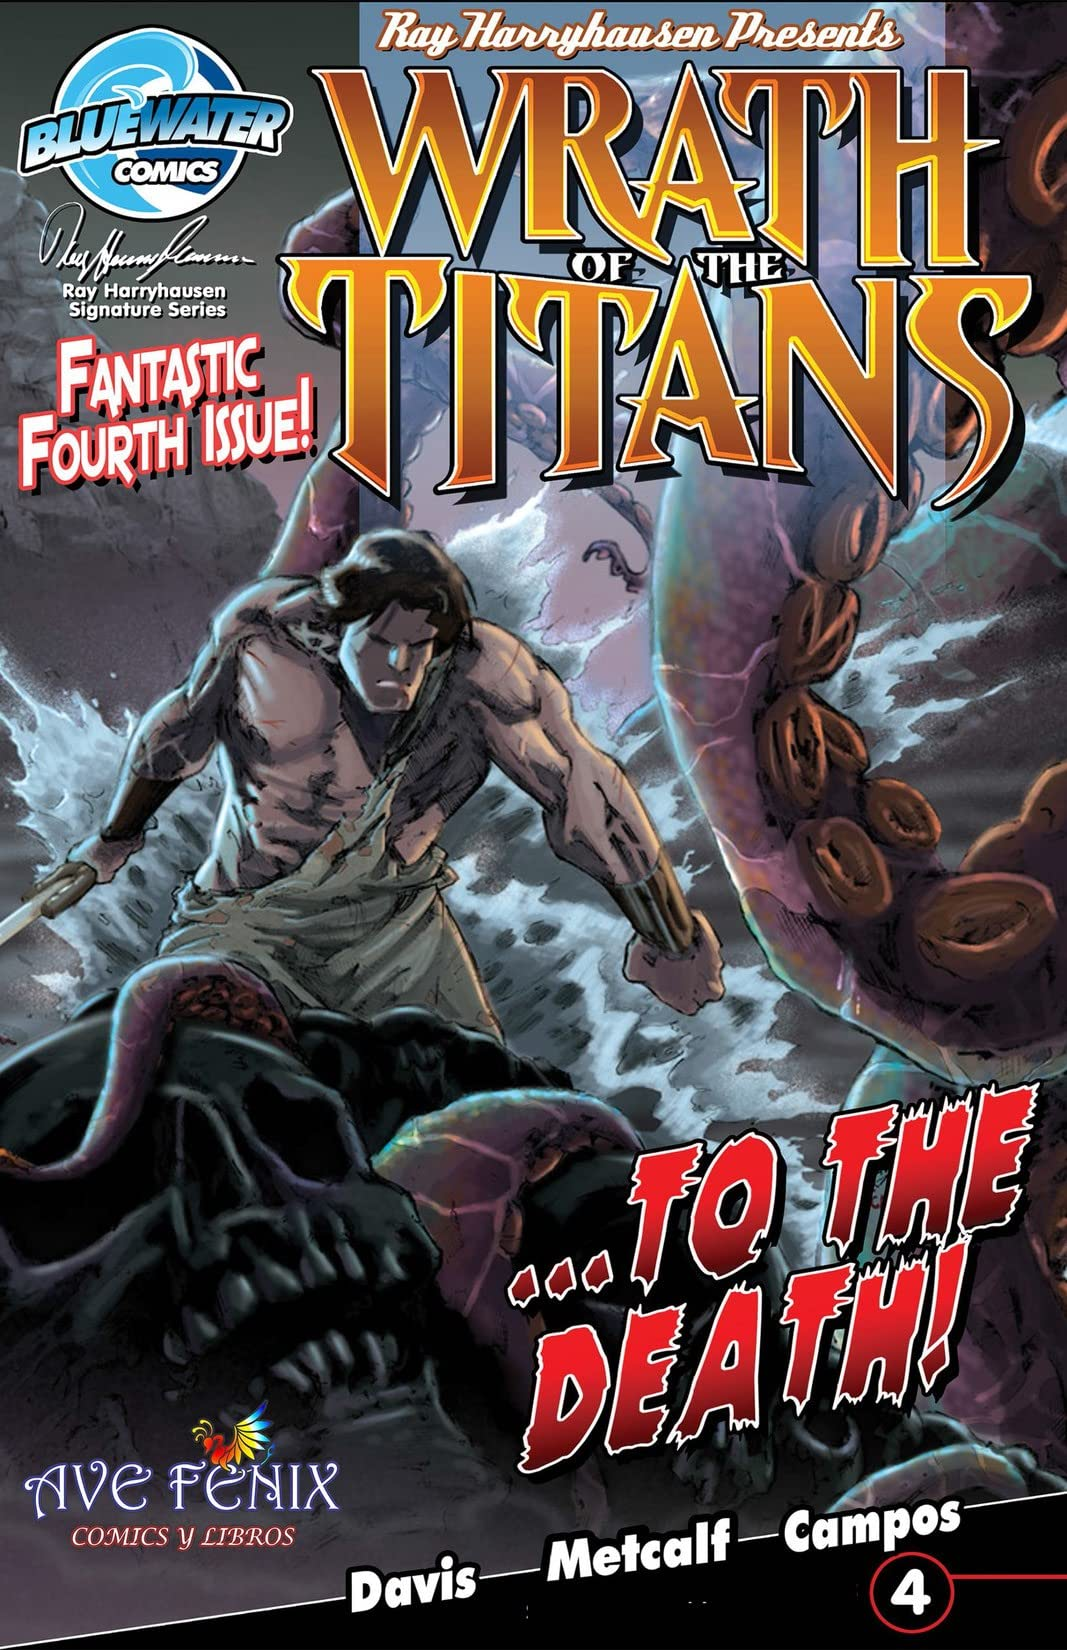 Wrath of the Titans: Spanish Edition #4